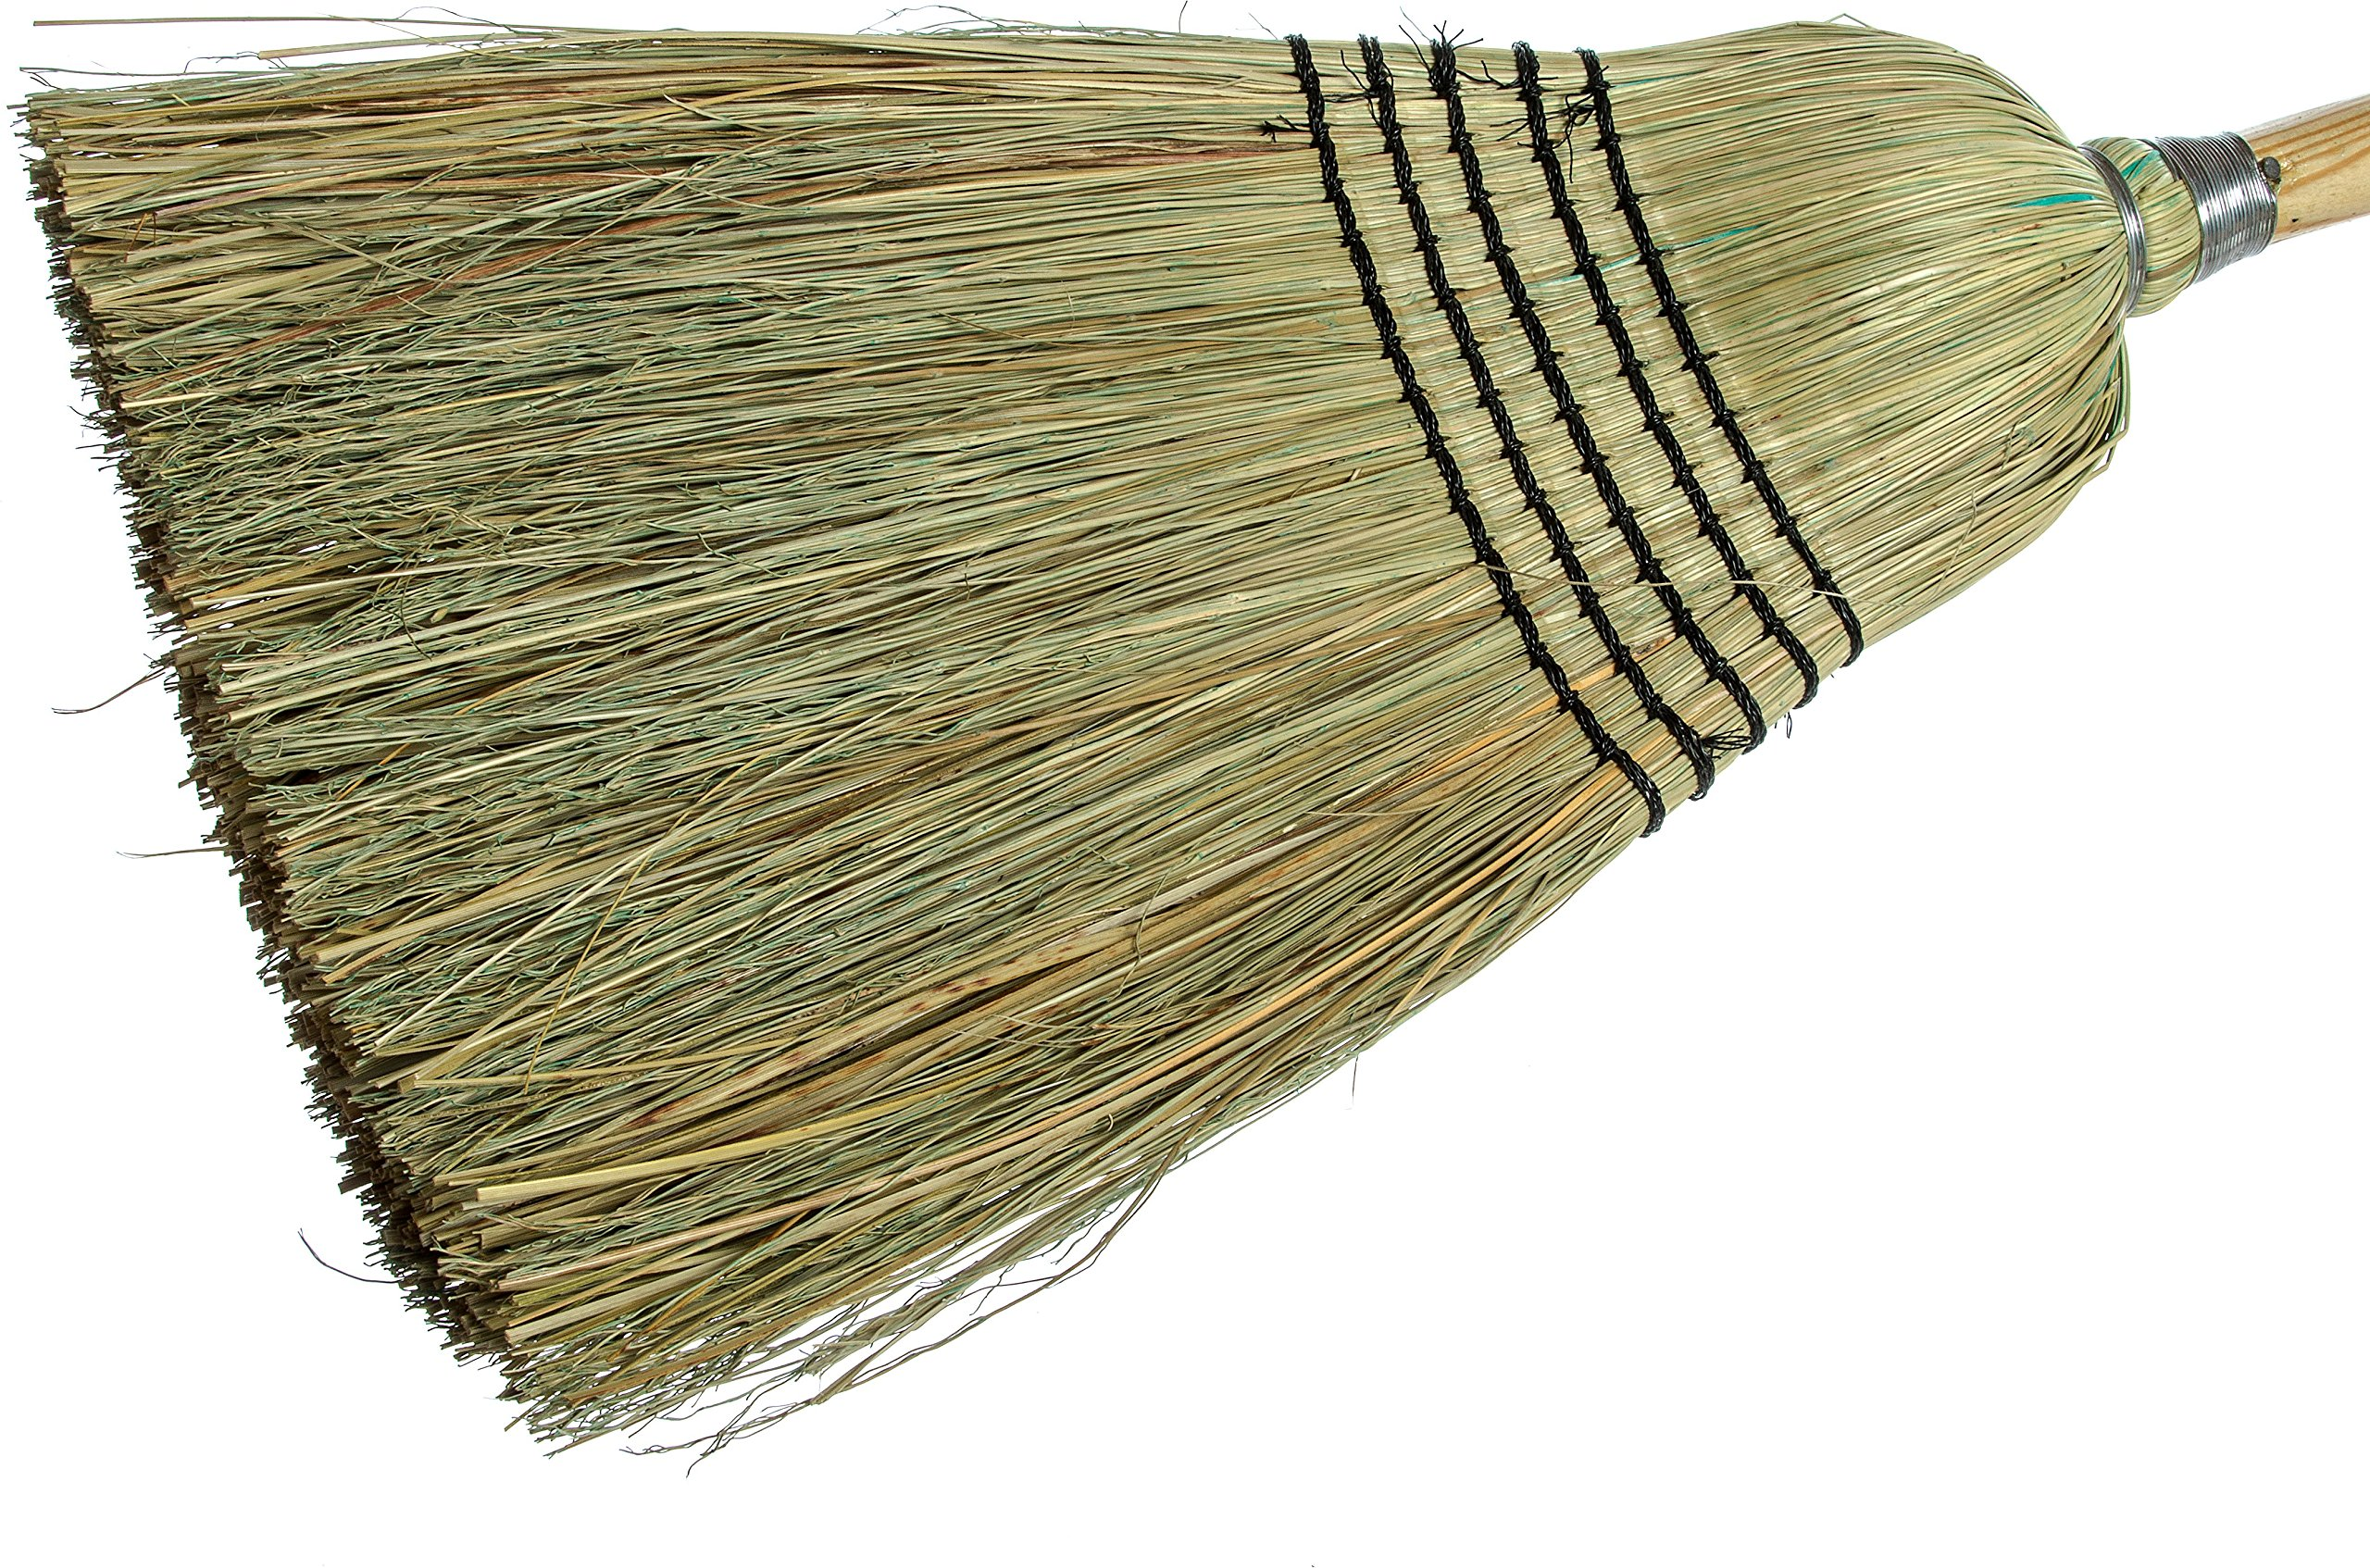 Carlisle 4135067 Commercial Corn Broom with Solid Wood Handle, 12'' Wide (Case of 12) by Carlisle (Image #2)